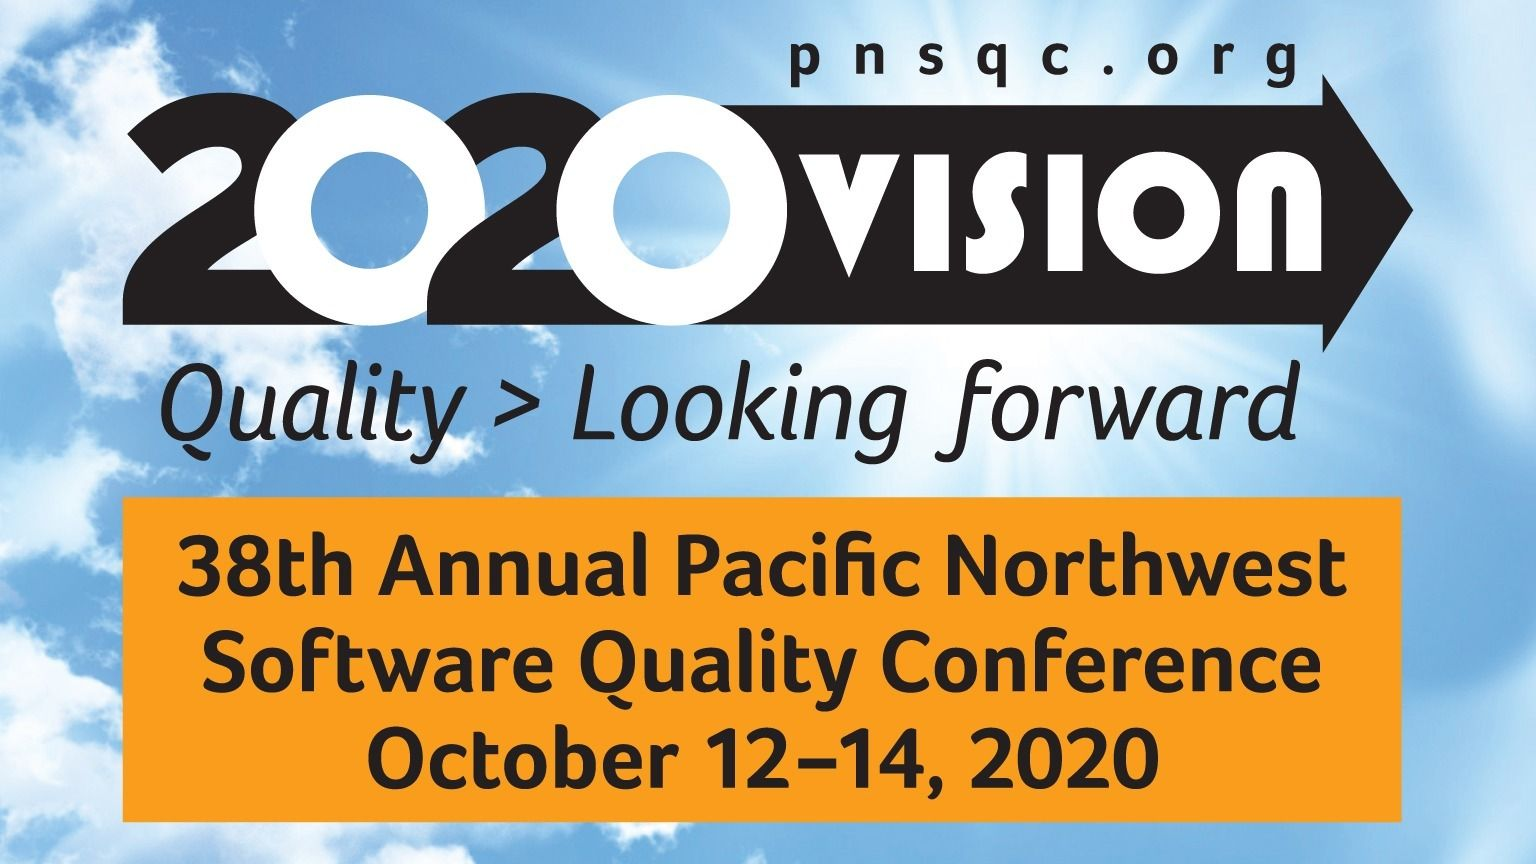 Pacific NW Software Quality Conference (PNSQC)